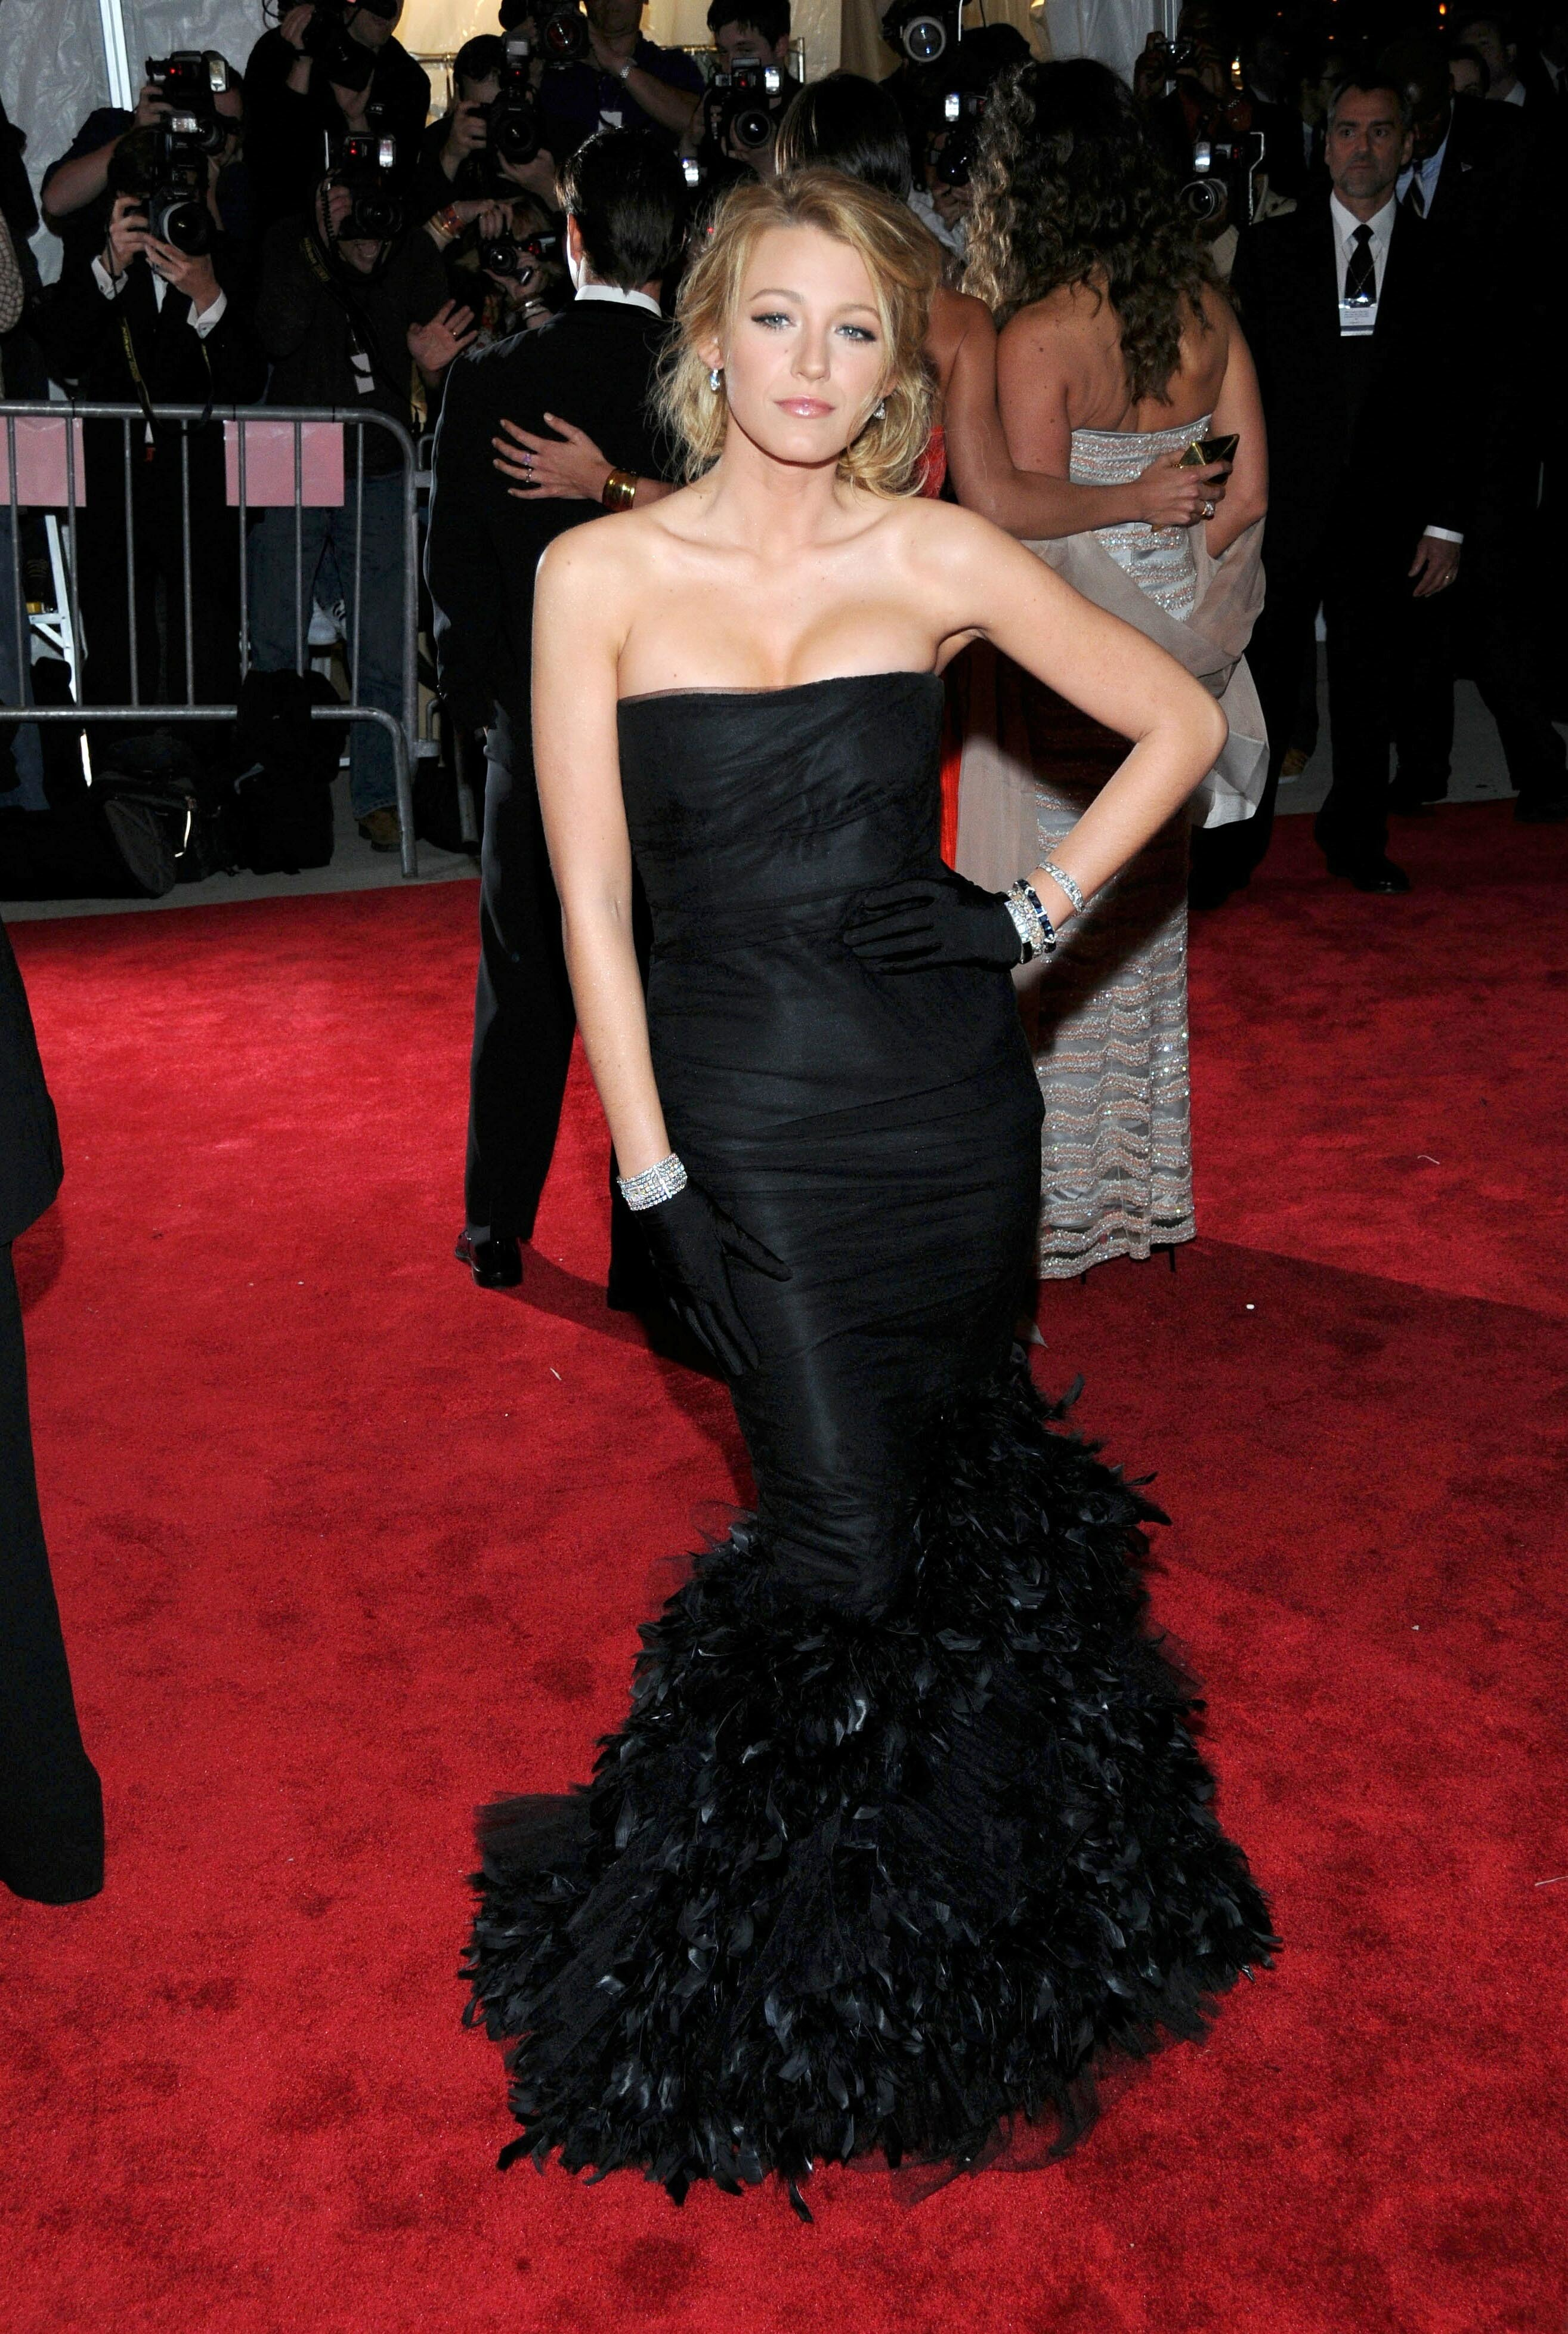 """Blake Lively attends """"Superheroes: Fashion and Fantasy"""" Costume Institute Gala at the Metropolitan Museum of Art in New York City on May 5, 2008."""